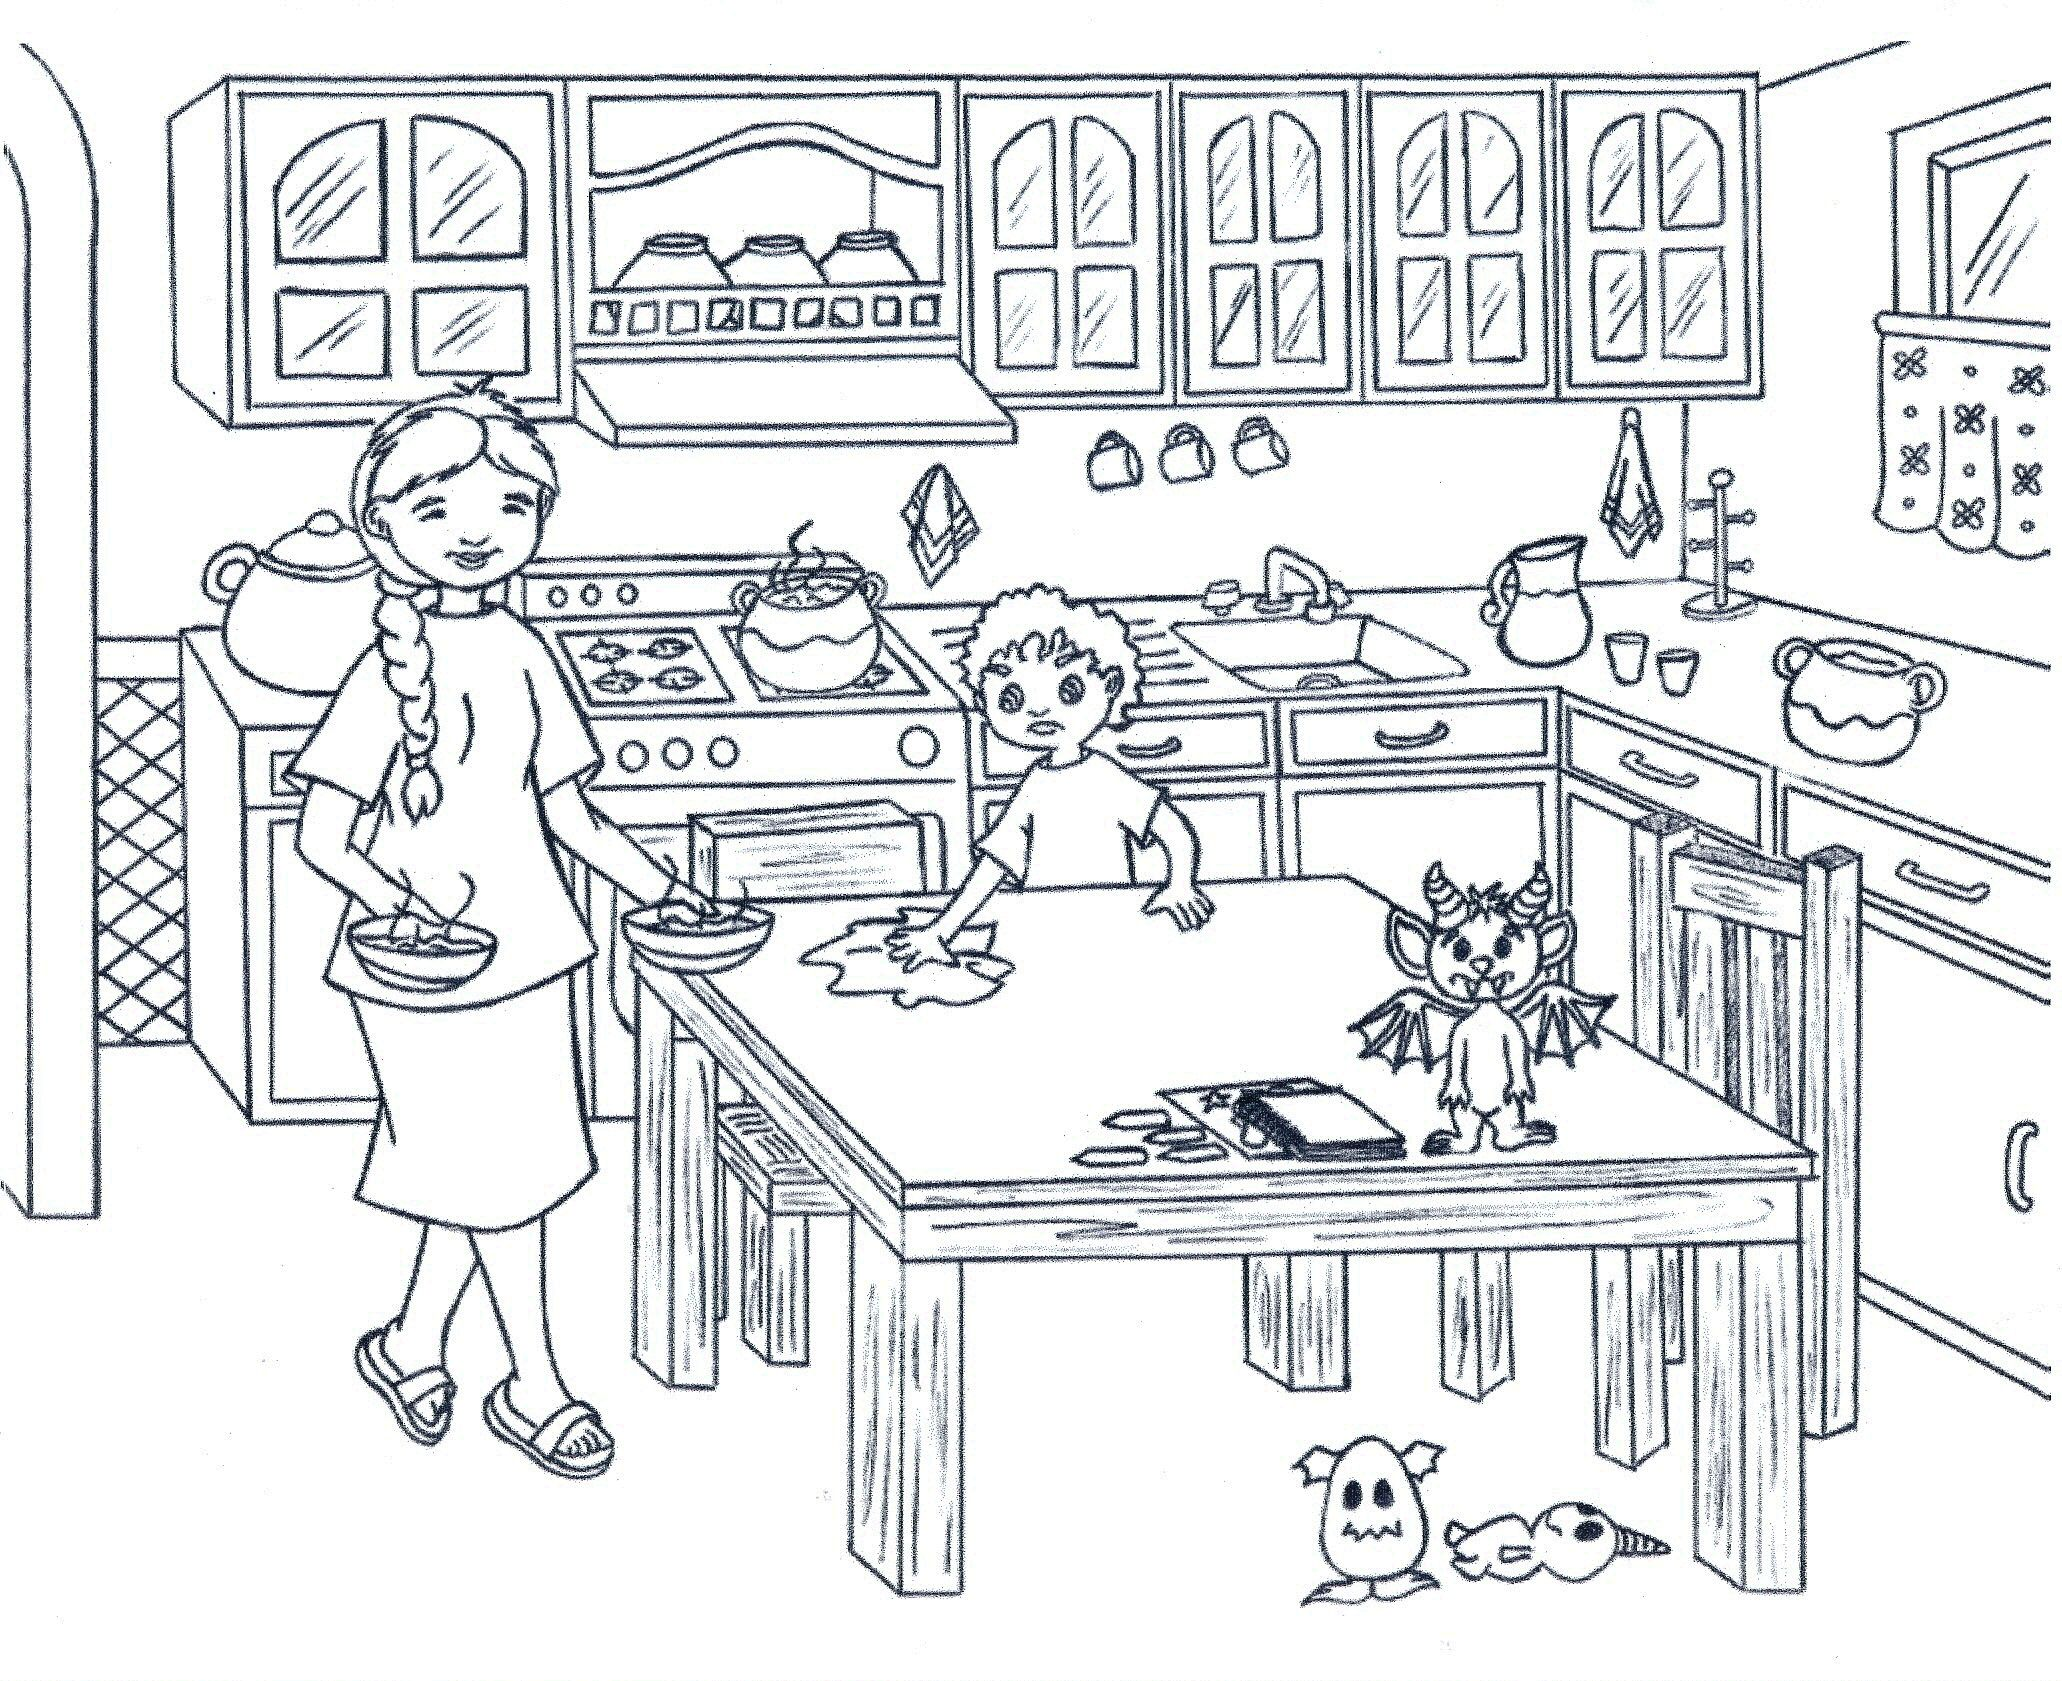 Coloring Pages Kitchen 03 Coloring Pages Colouring Pages Coloring For Kids